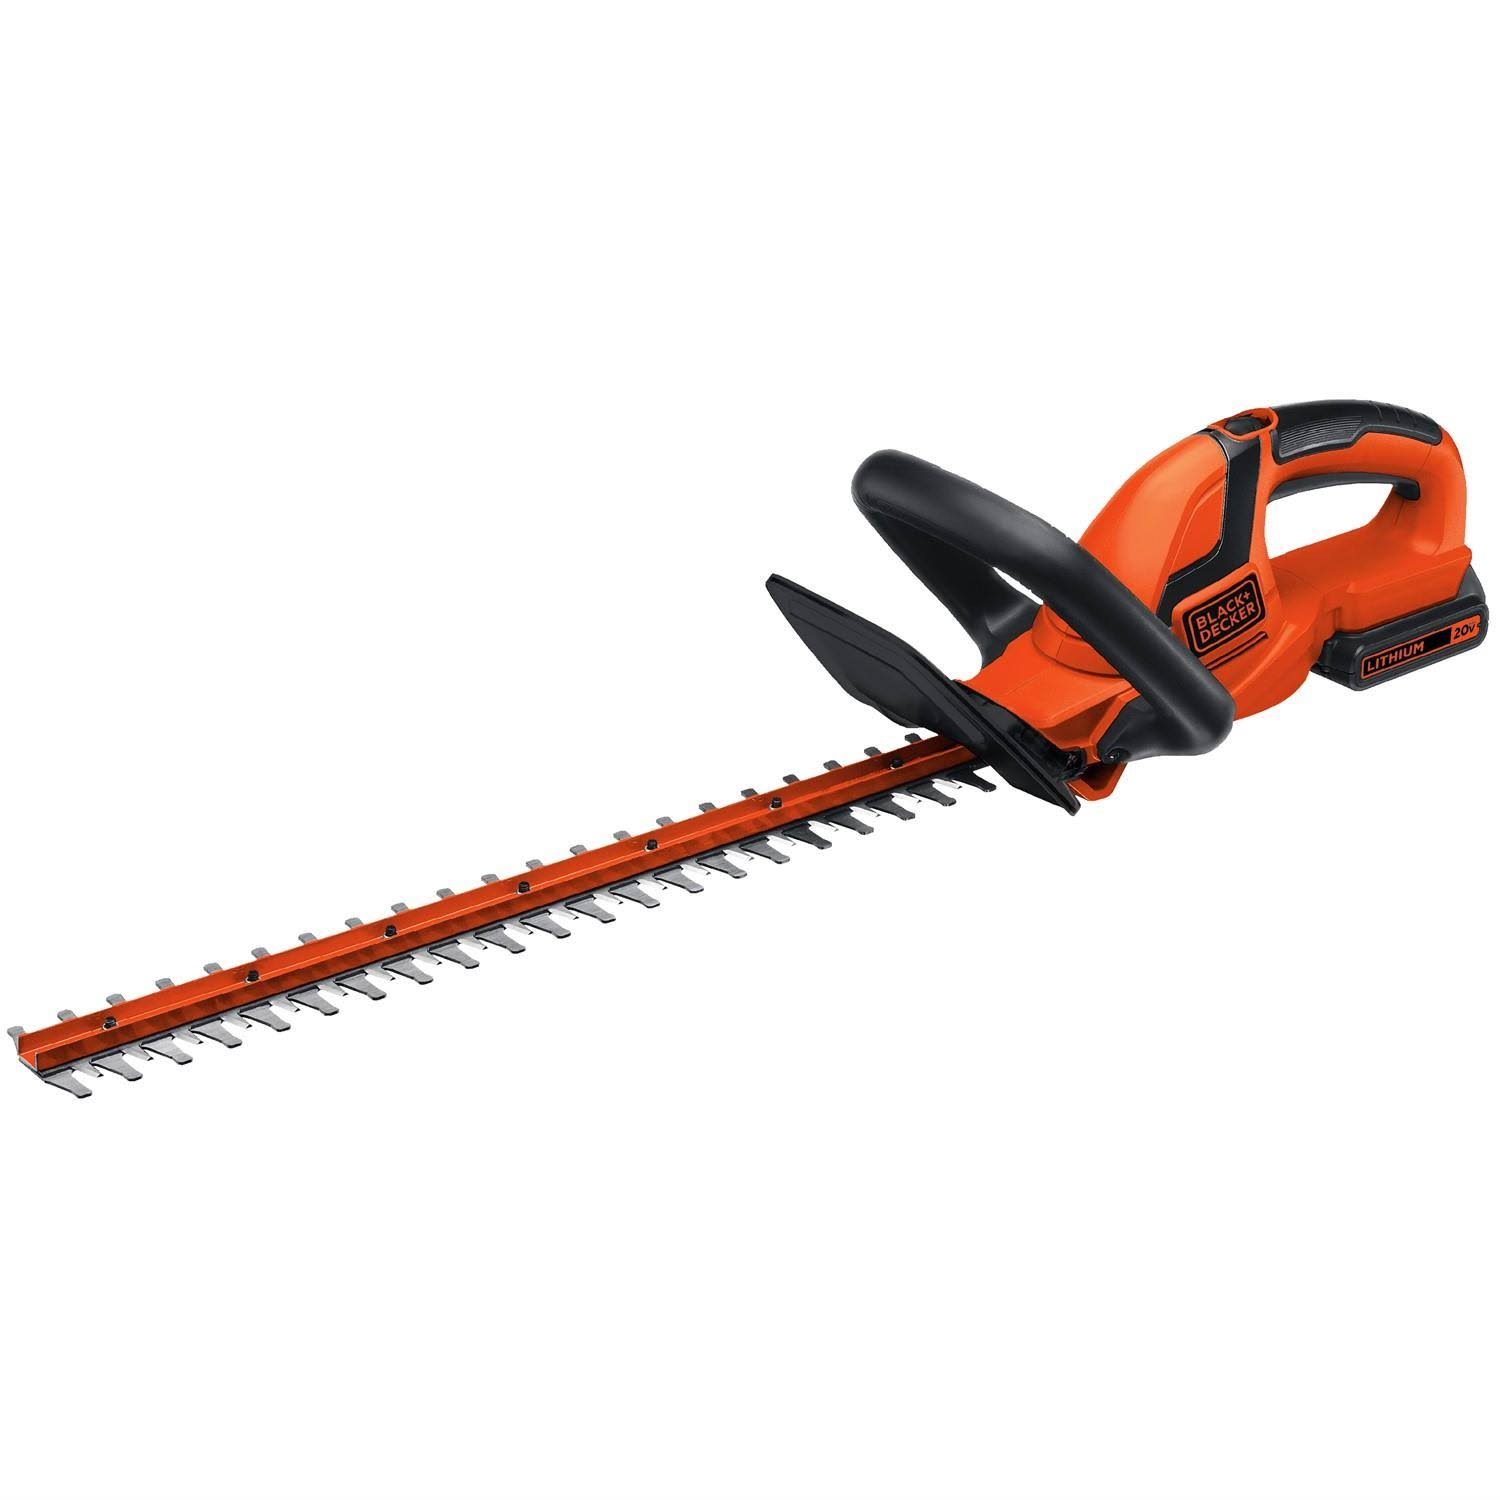 Black & Decker Cordless Hedge Trimmer - 20V